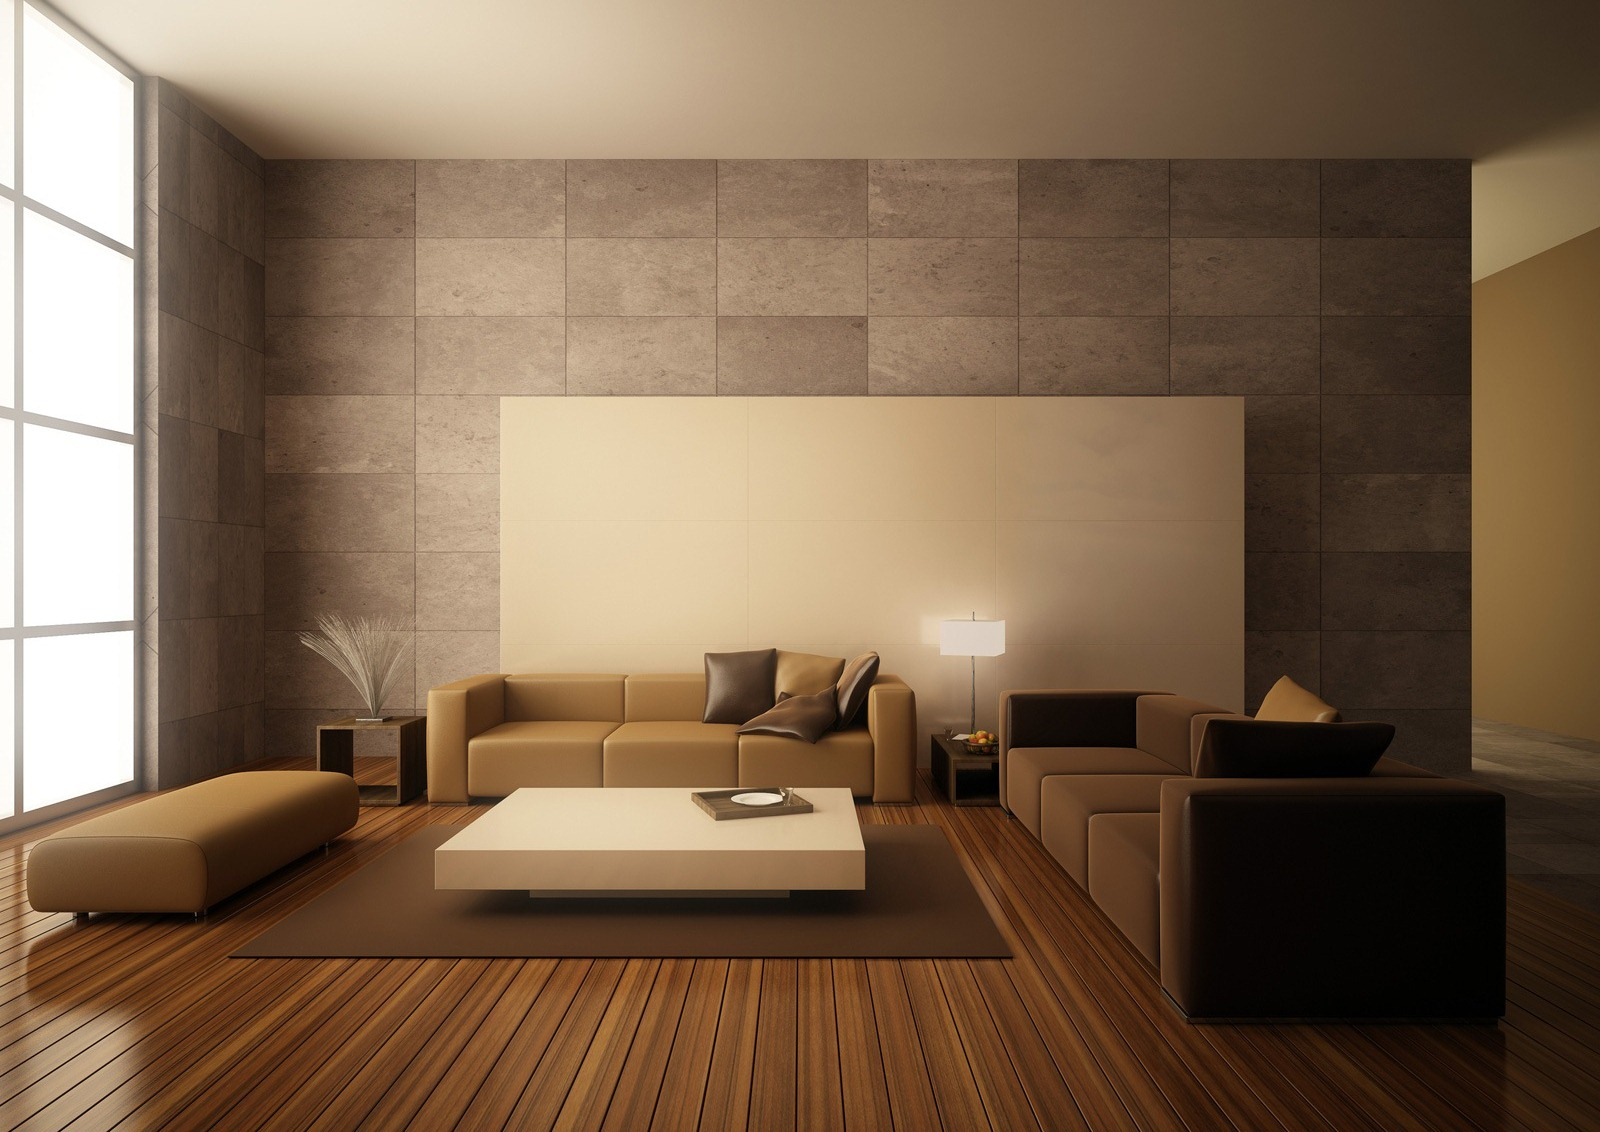 Wallpaper Interior Rumah photo - 6